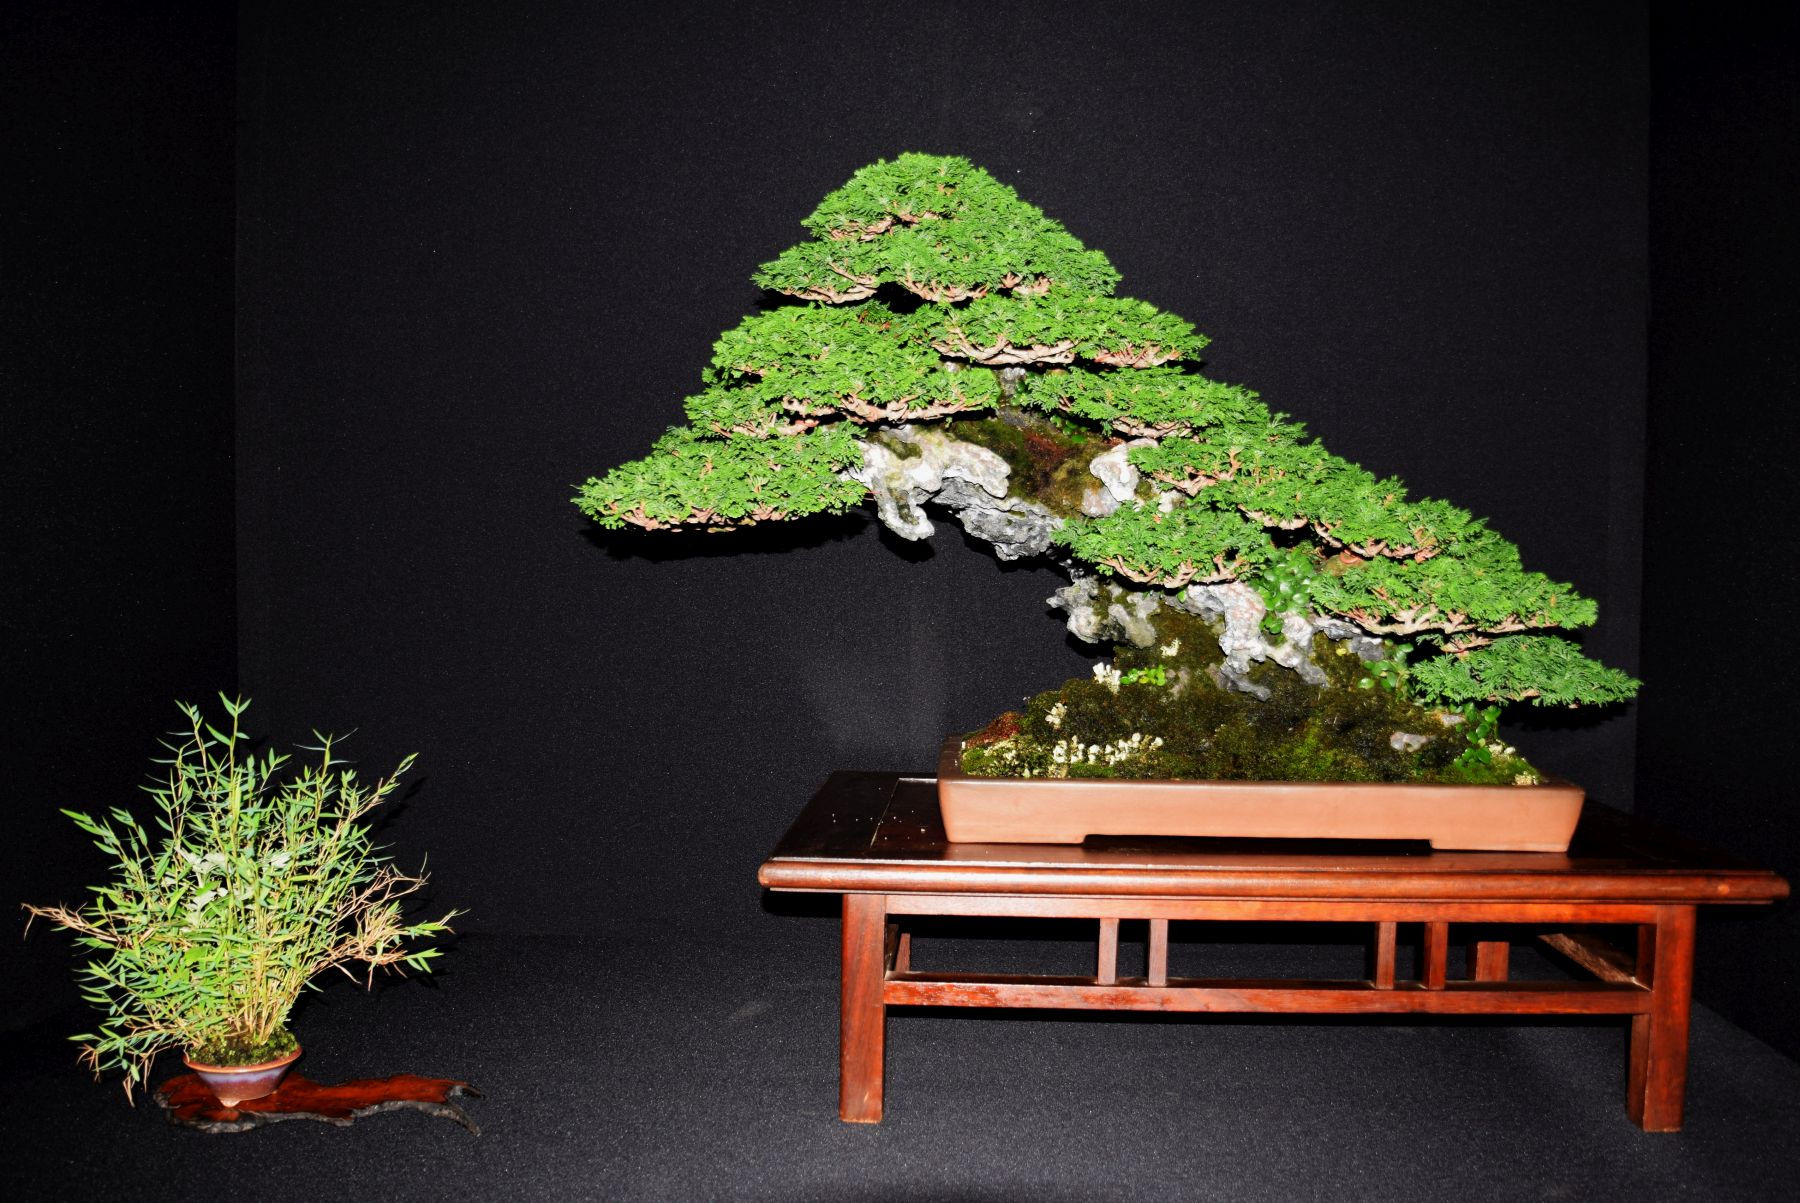 bonsai-museum-luis-vallejo-019